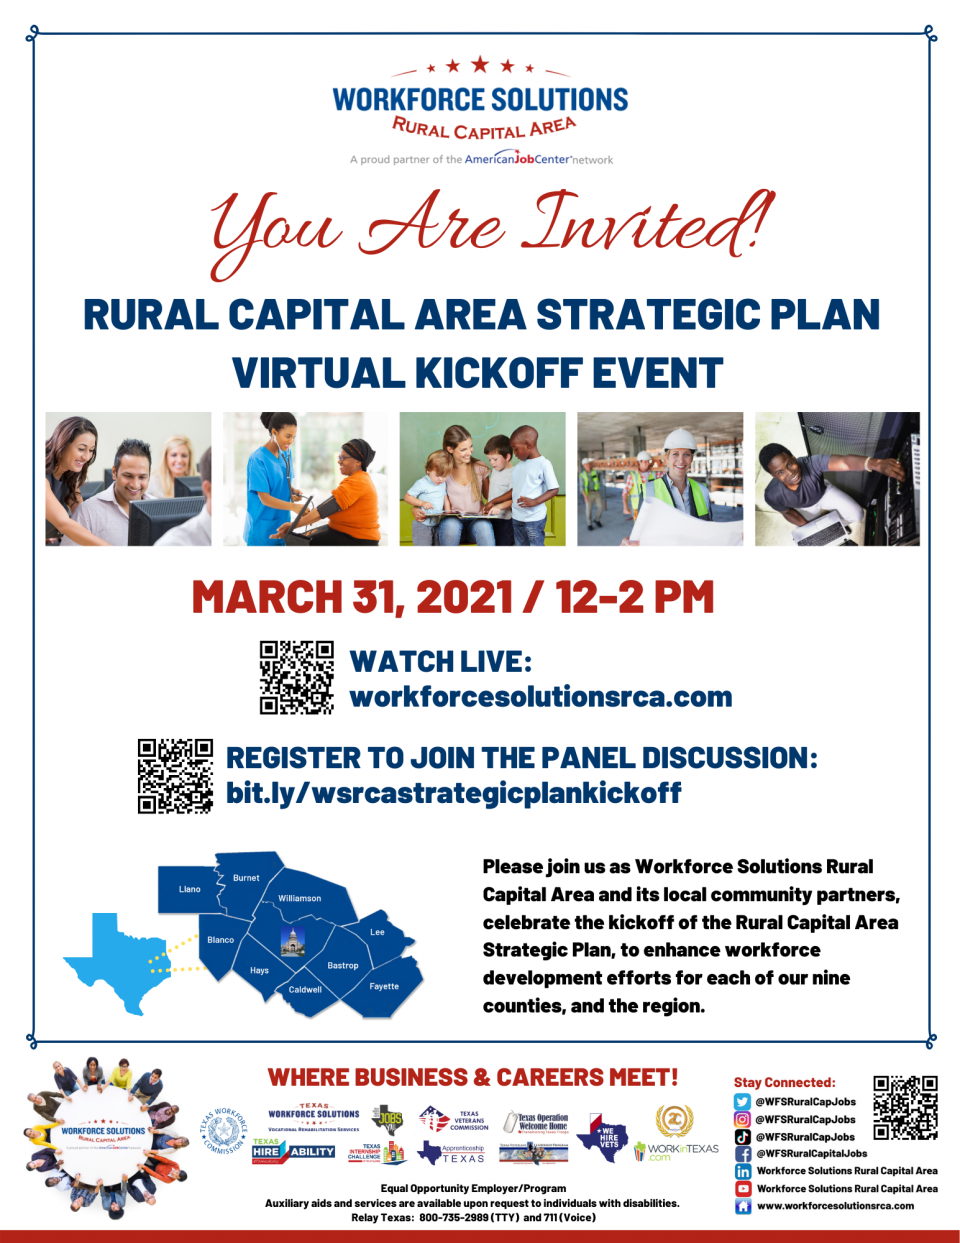 WSRCA to Host Live Strategic Plan Kickoff Event on March 31